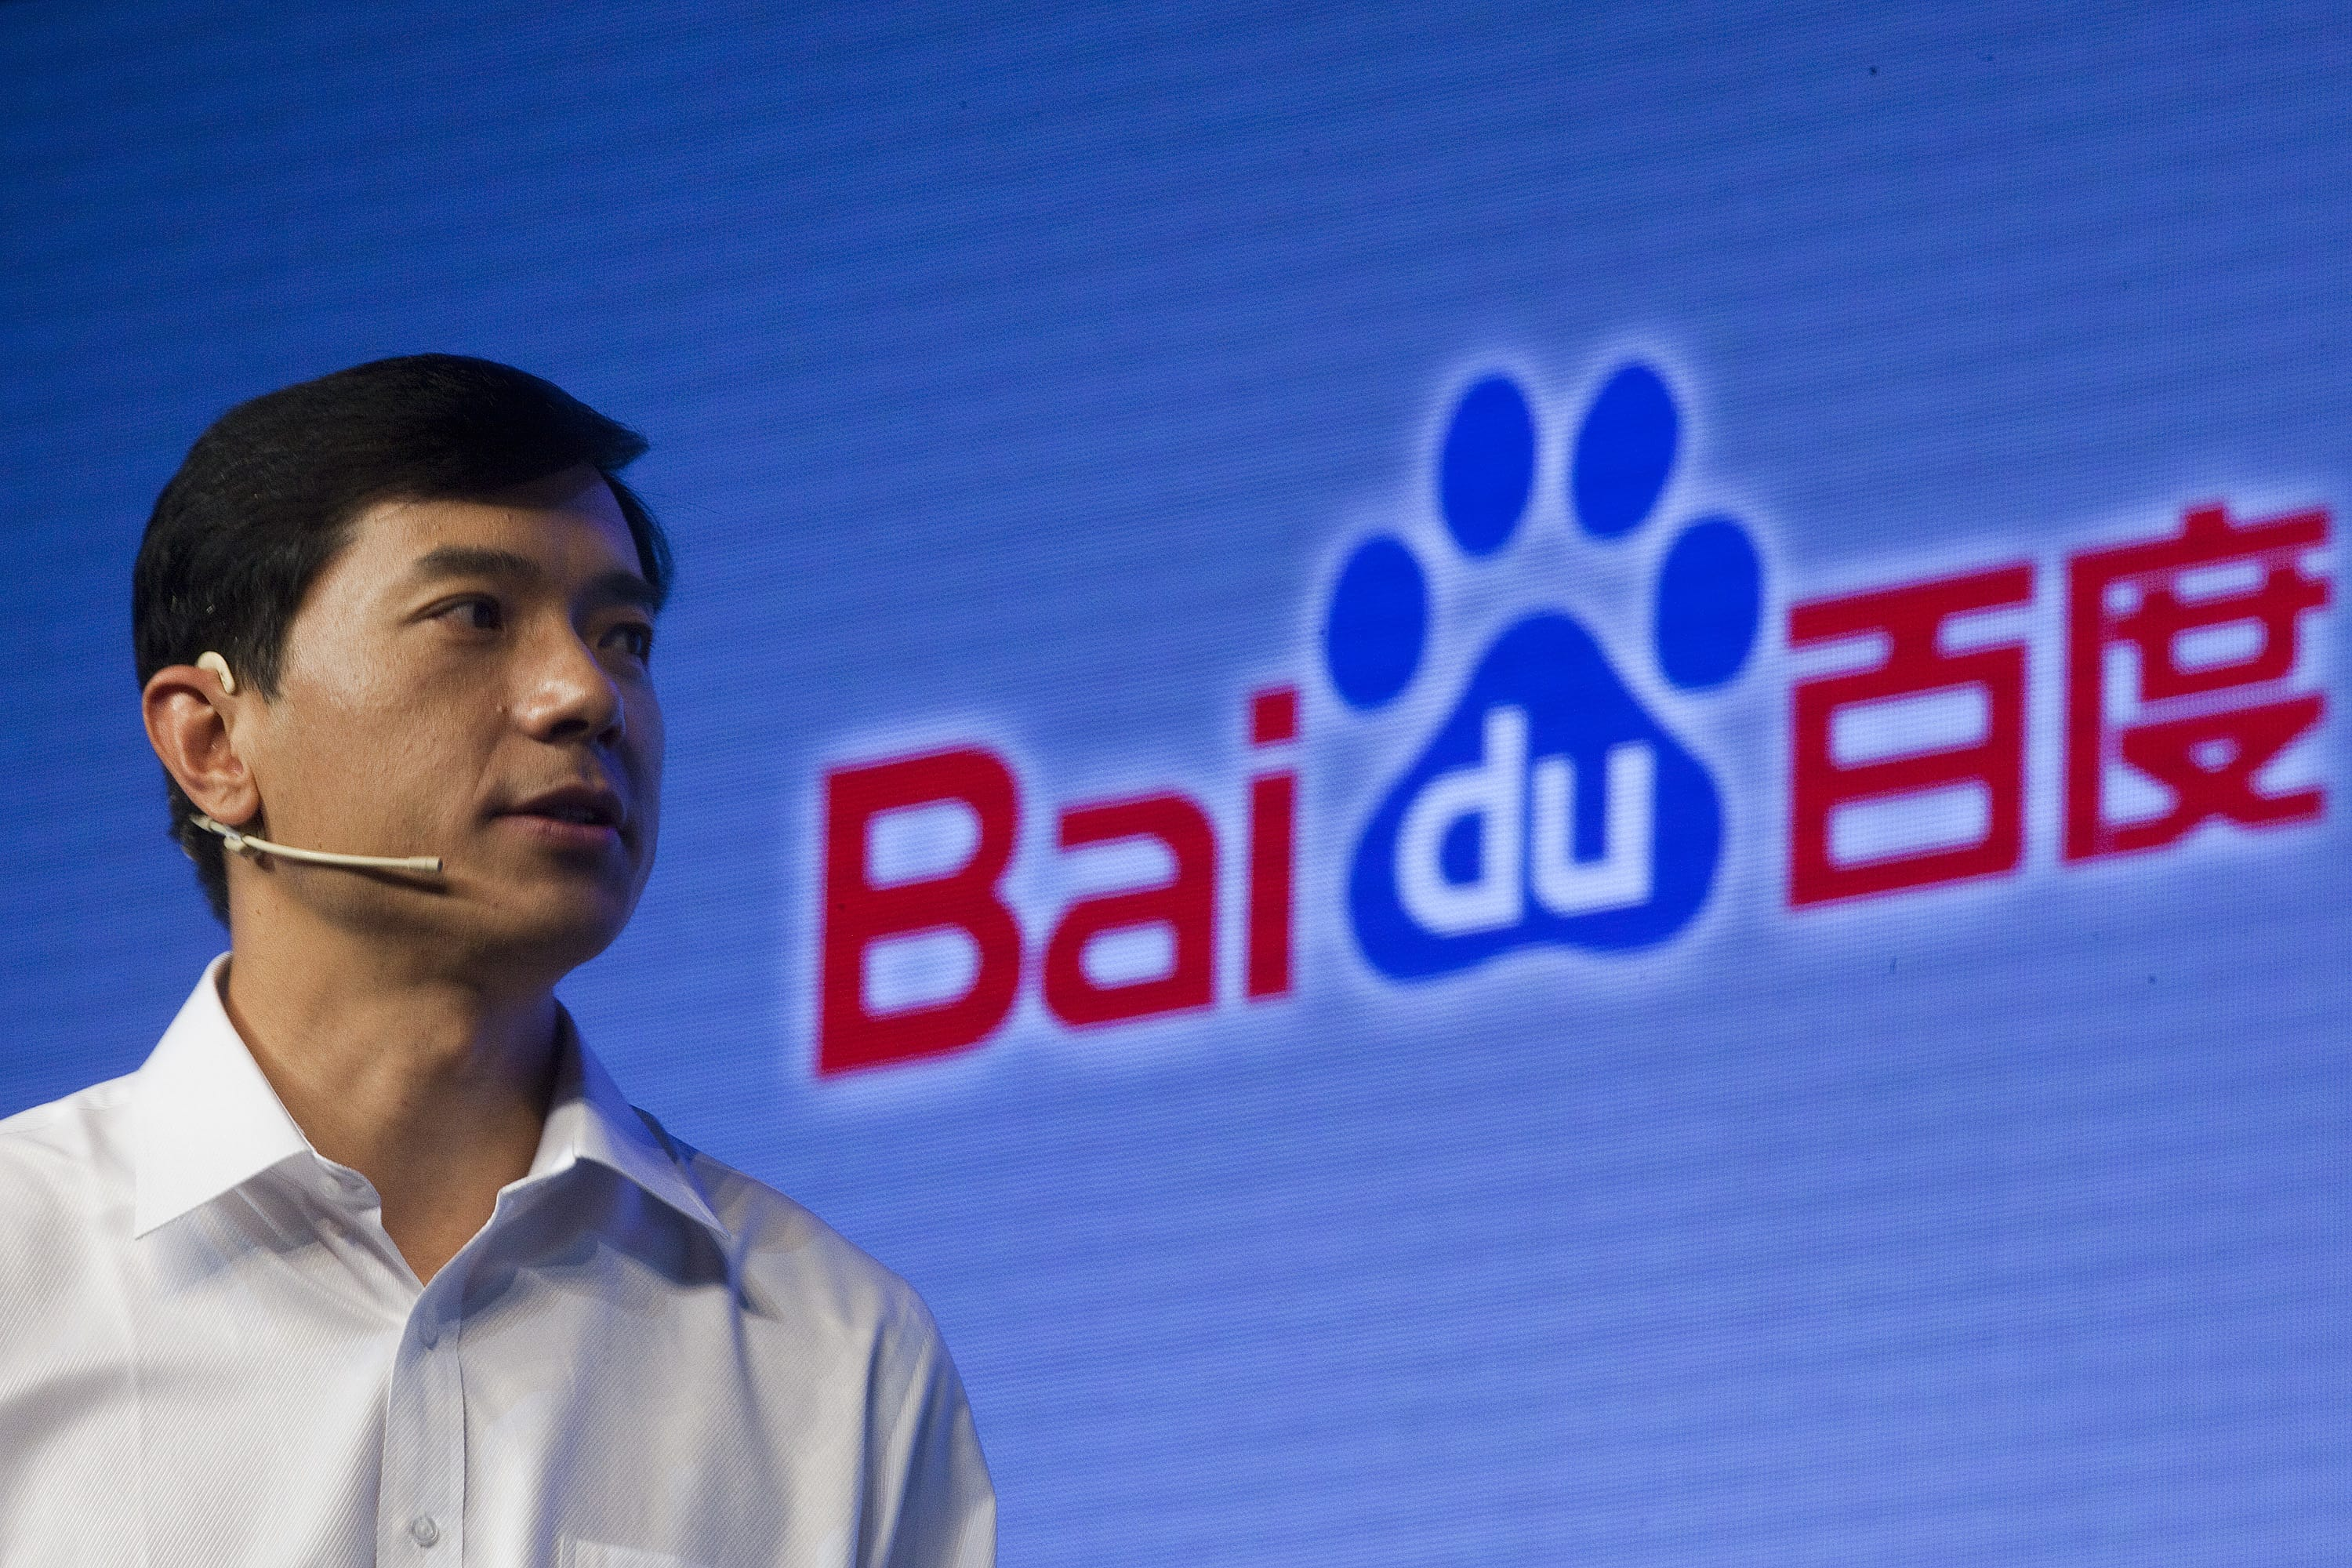 Baidu has lost over $60 billion in value since its peak — now earnings are expected to fall further